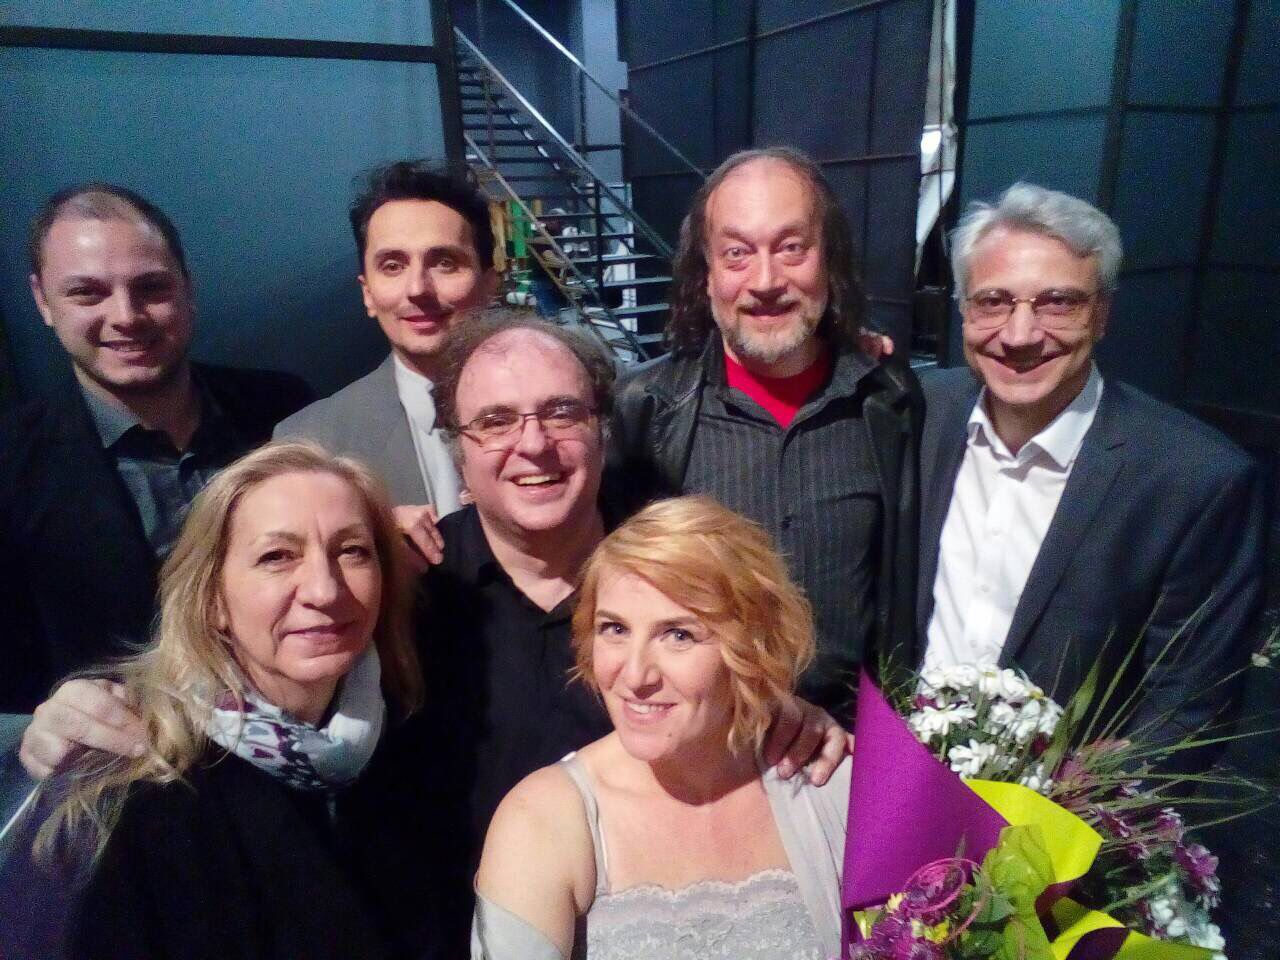 After Lady Macbeth of Shostakovich at State Opera - Plovdiv.